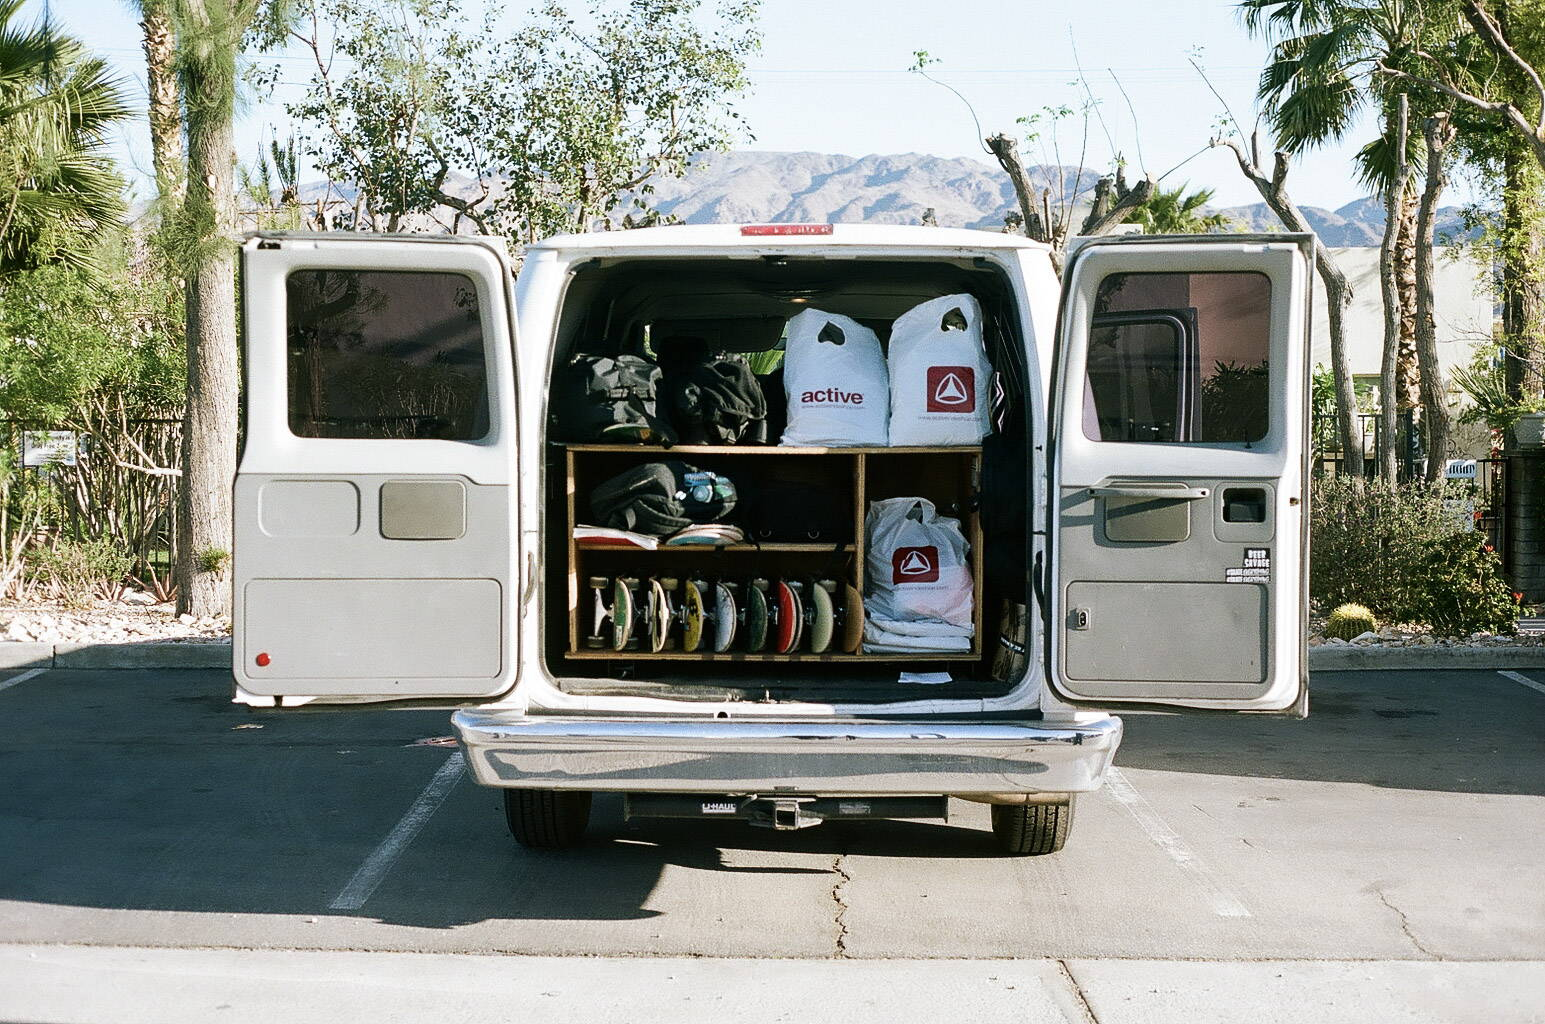 Van Photo: @remainhungry